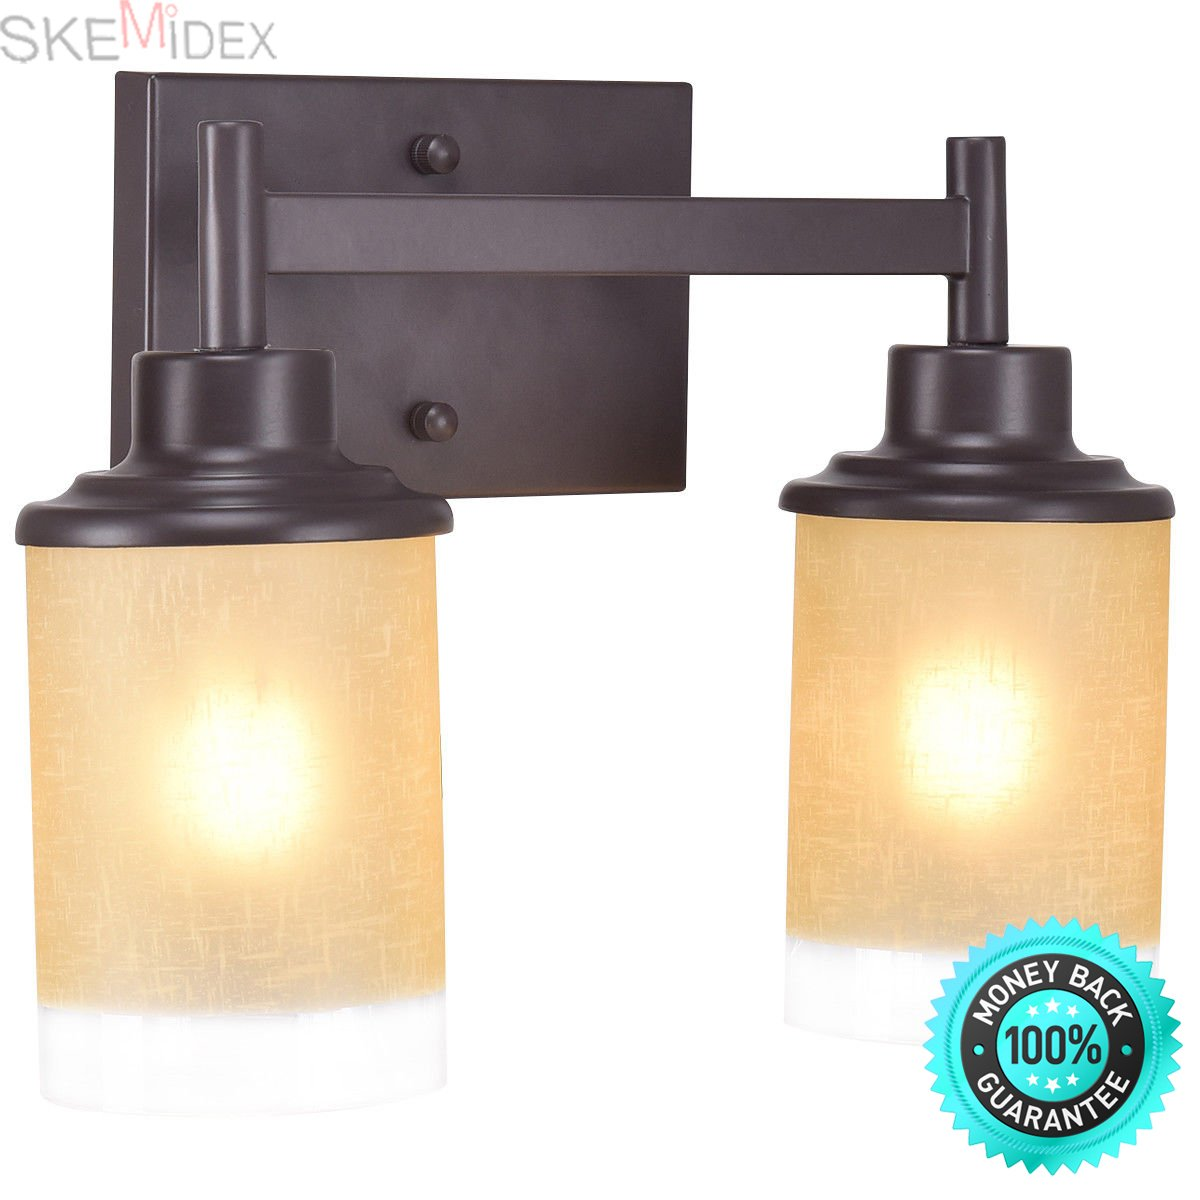 SKEMiDEX---Vanity Light Wall Mounted 2 Light Bathroom Vanity Fixture Antique Bronze Bulbs. Black Wall Industrial Vintage Simplicity Lamp Fixture Steel Finished for Cafe Club 2 Light